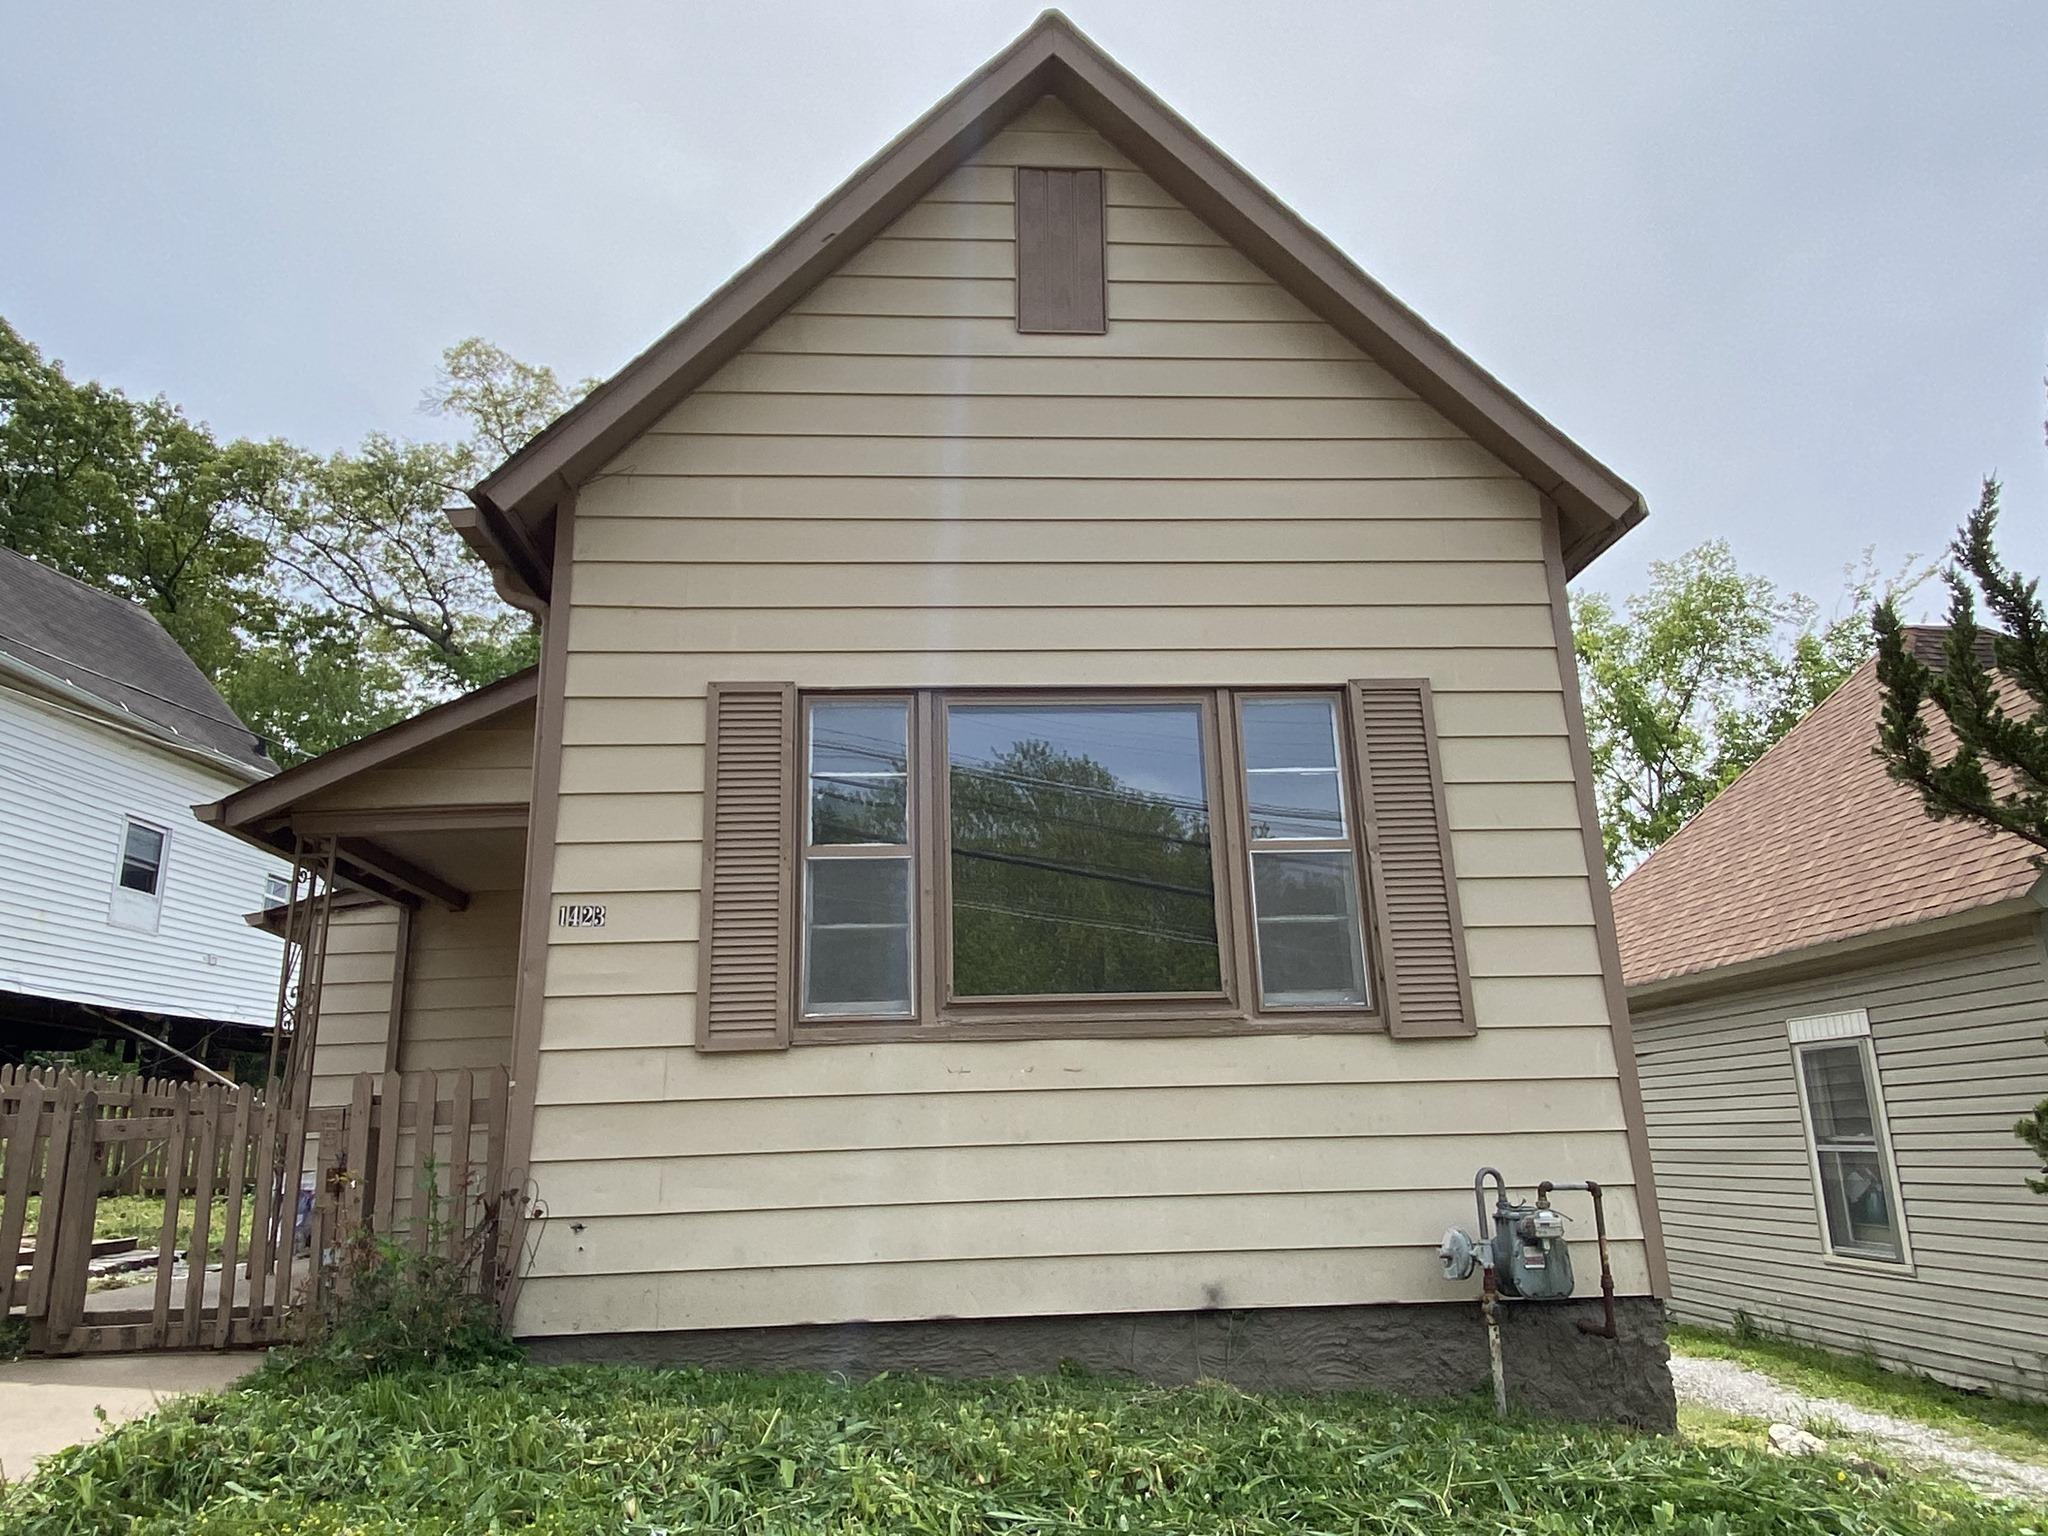 1423 Harvey St, Knoxville, Tennessee 37917, 2 Bedrooms Bedrooms, ,2 BathroomsBathrooms,Single Family,For Sale,Harvey,1115119